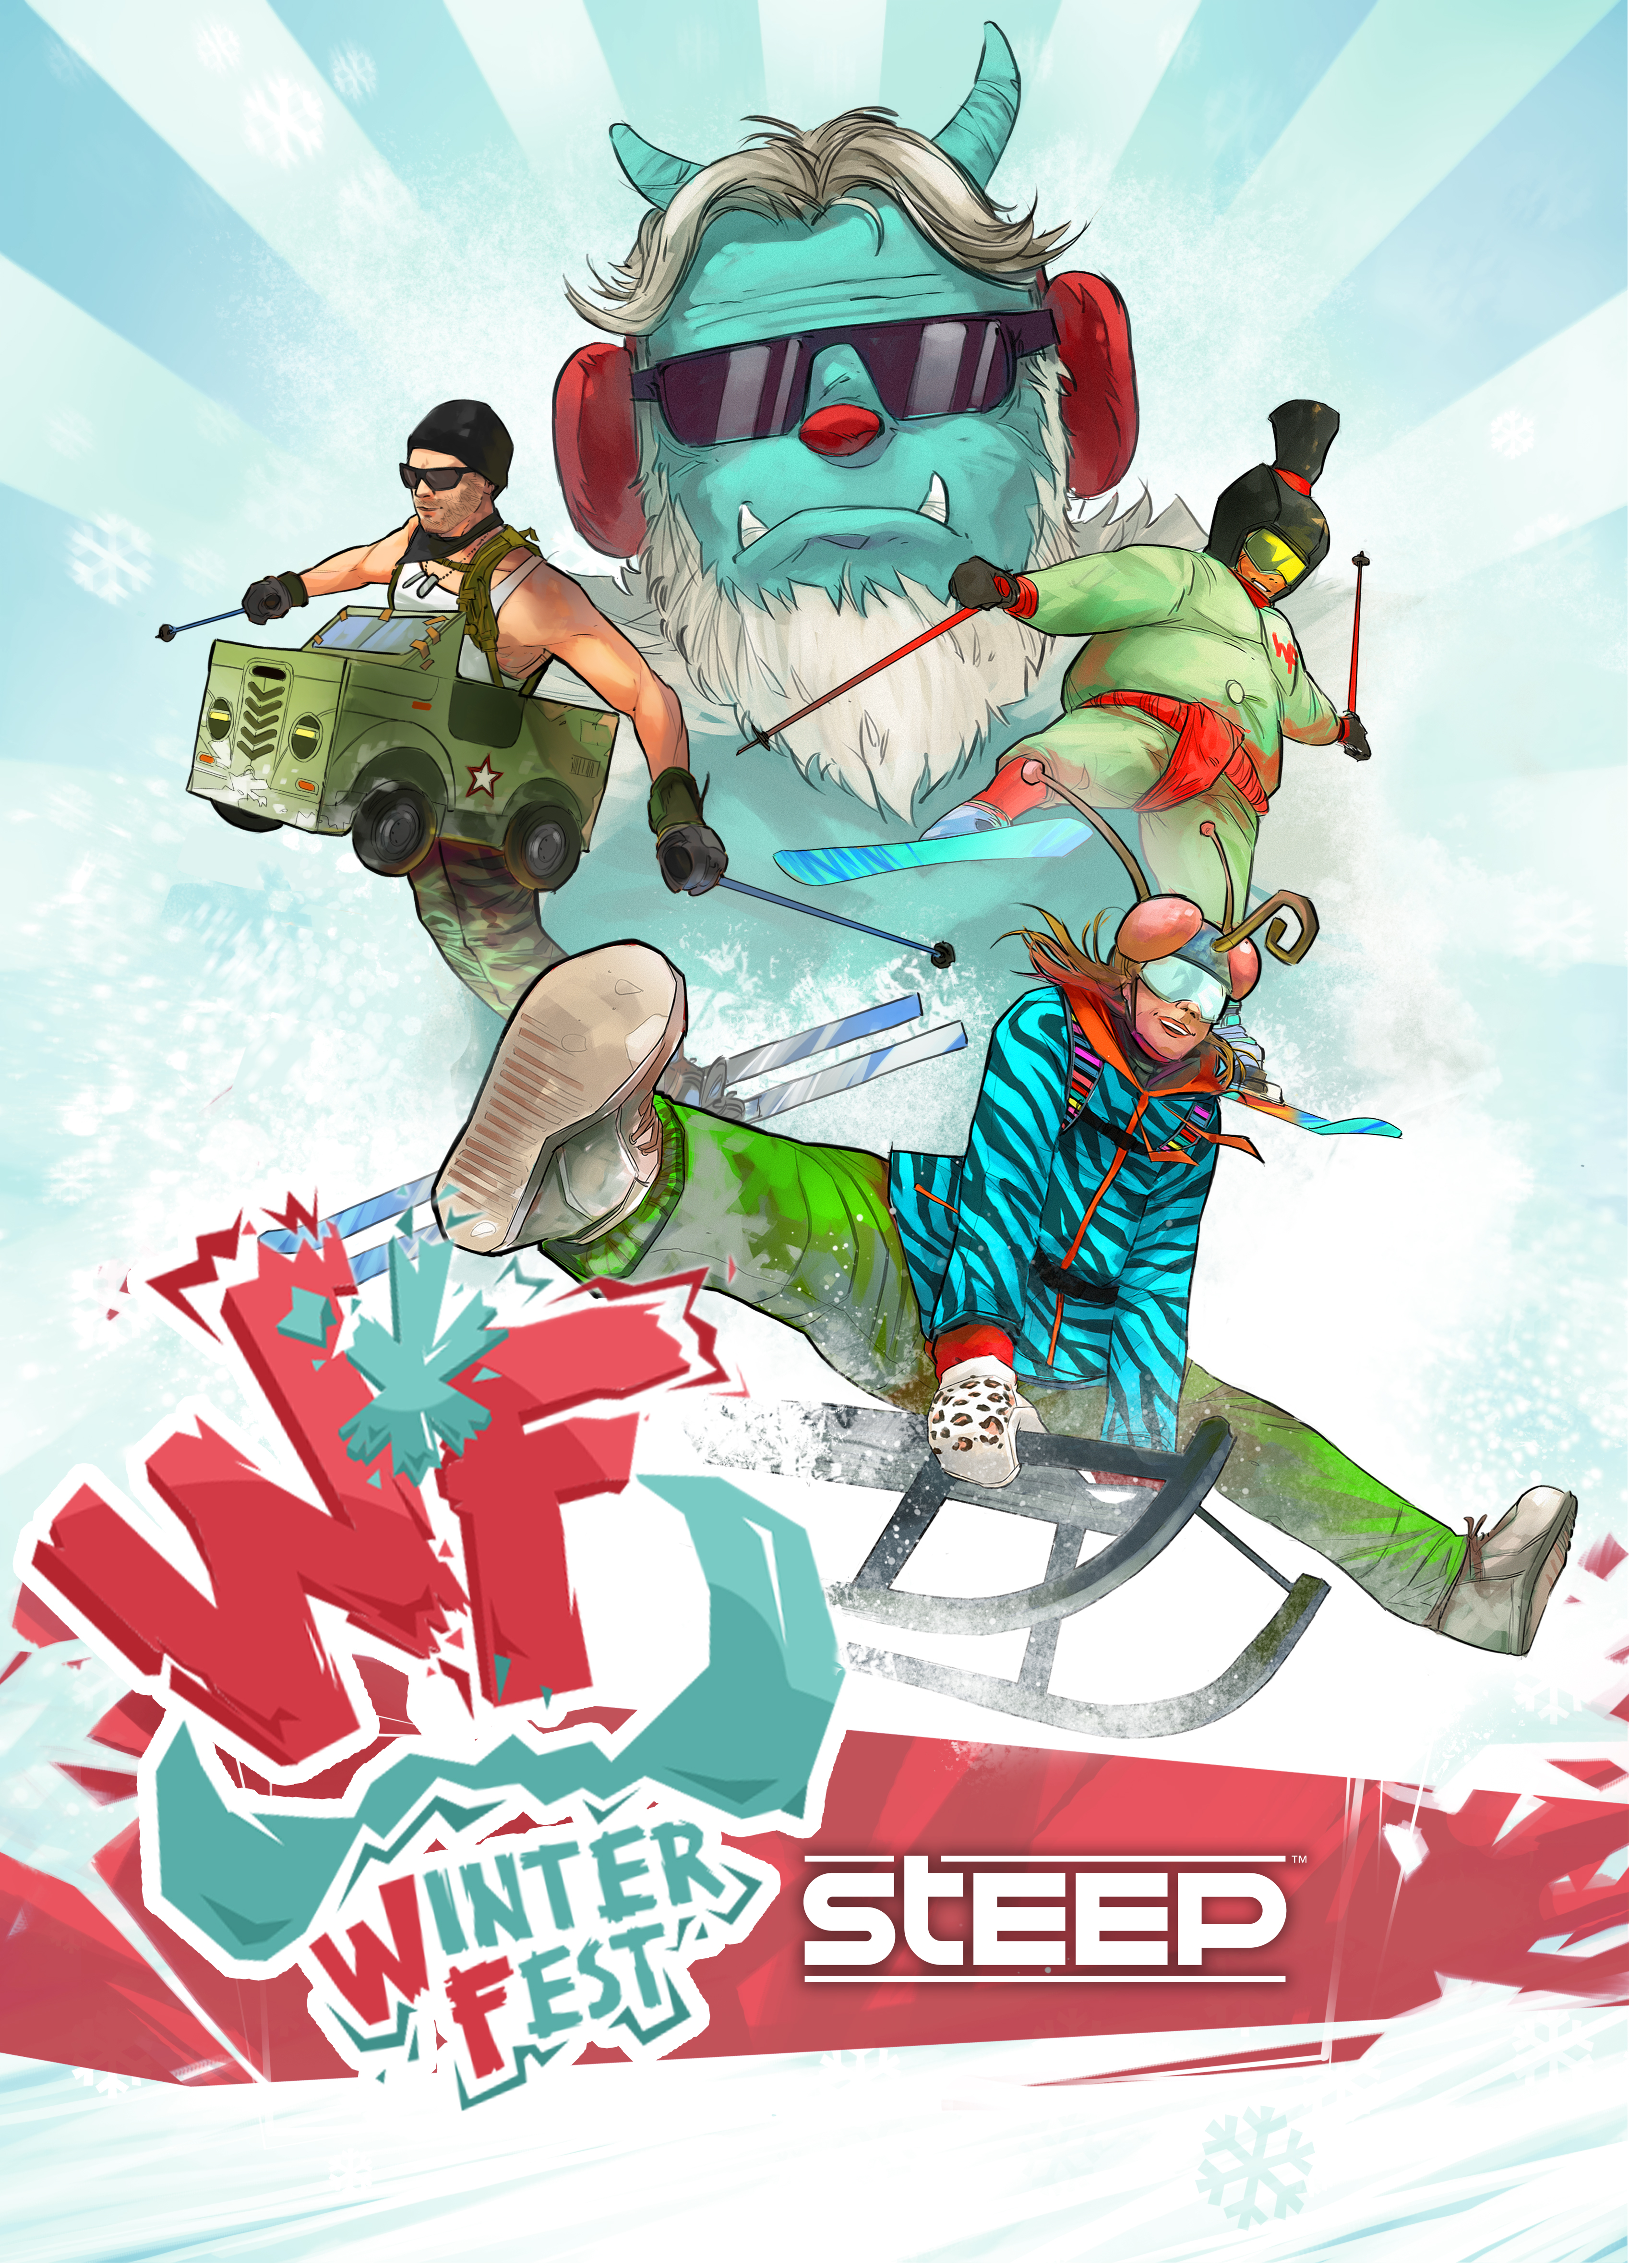 STEEP_WINTERFEST_KEYART_20170420_EMEA_1492686311